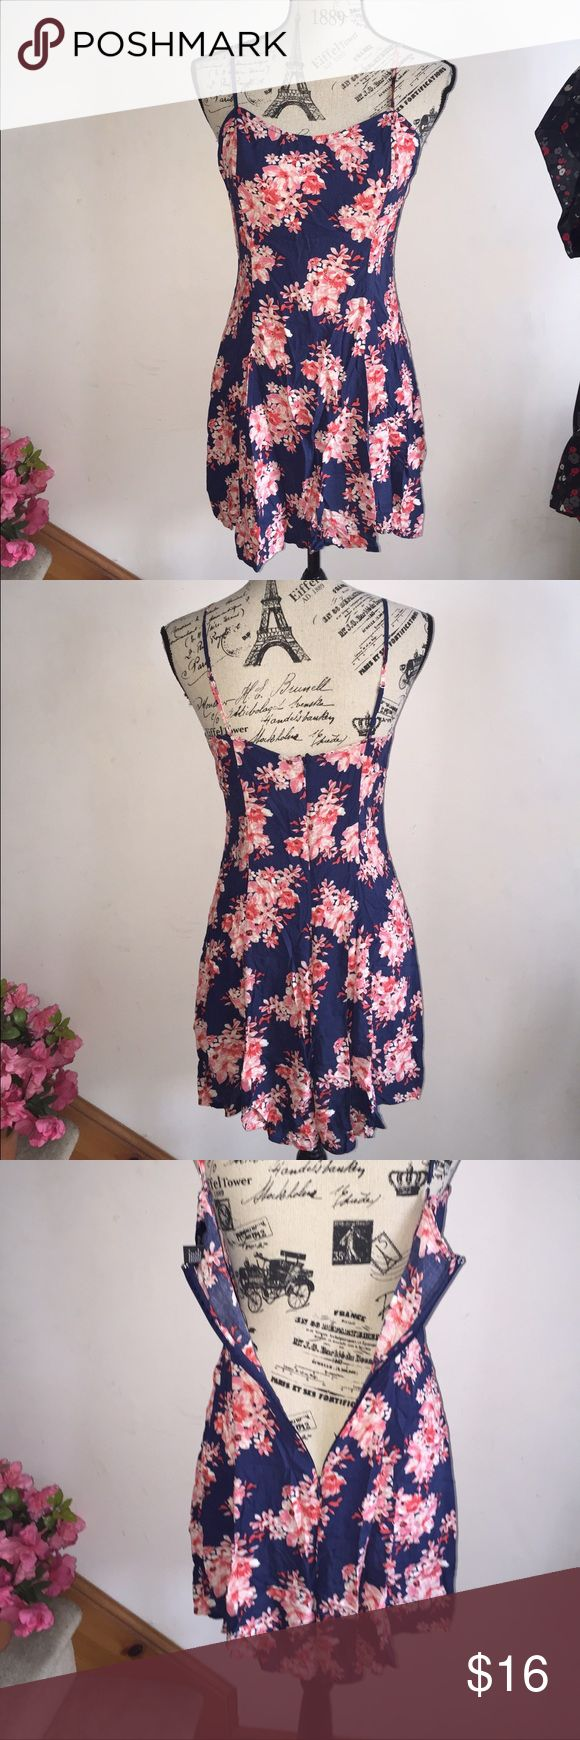 "Forever 21 navy pink floral zip up sundress large Forever 21 navy and pink floral dress. Adjustable spaghetti straps. Zipper on the back. Excellent condition, hardly worn! 26"" long and 34"" bust, does have some stretch. Forever 21 Dresses"